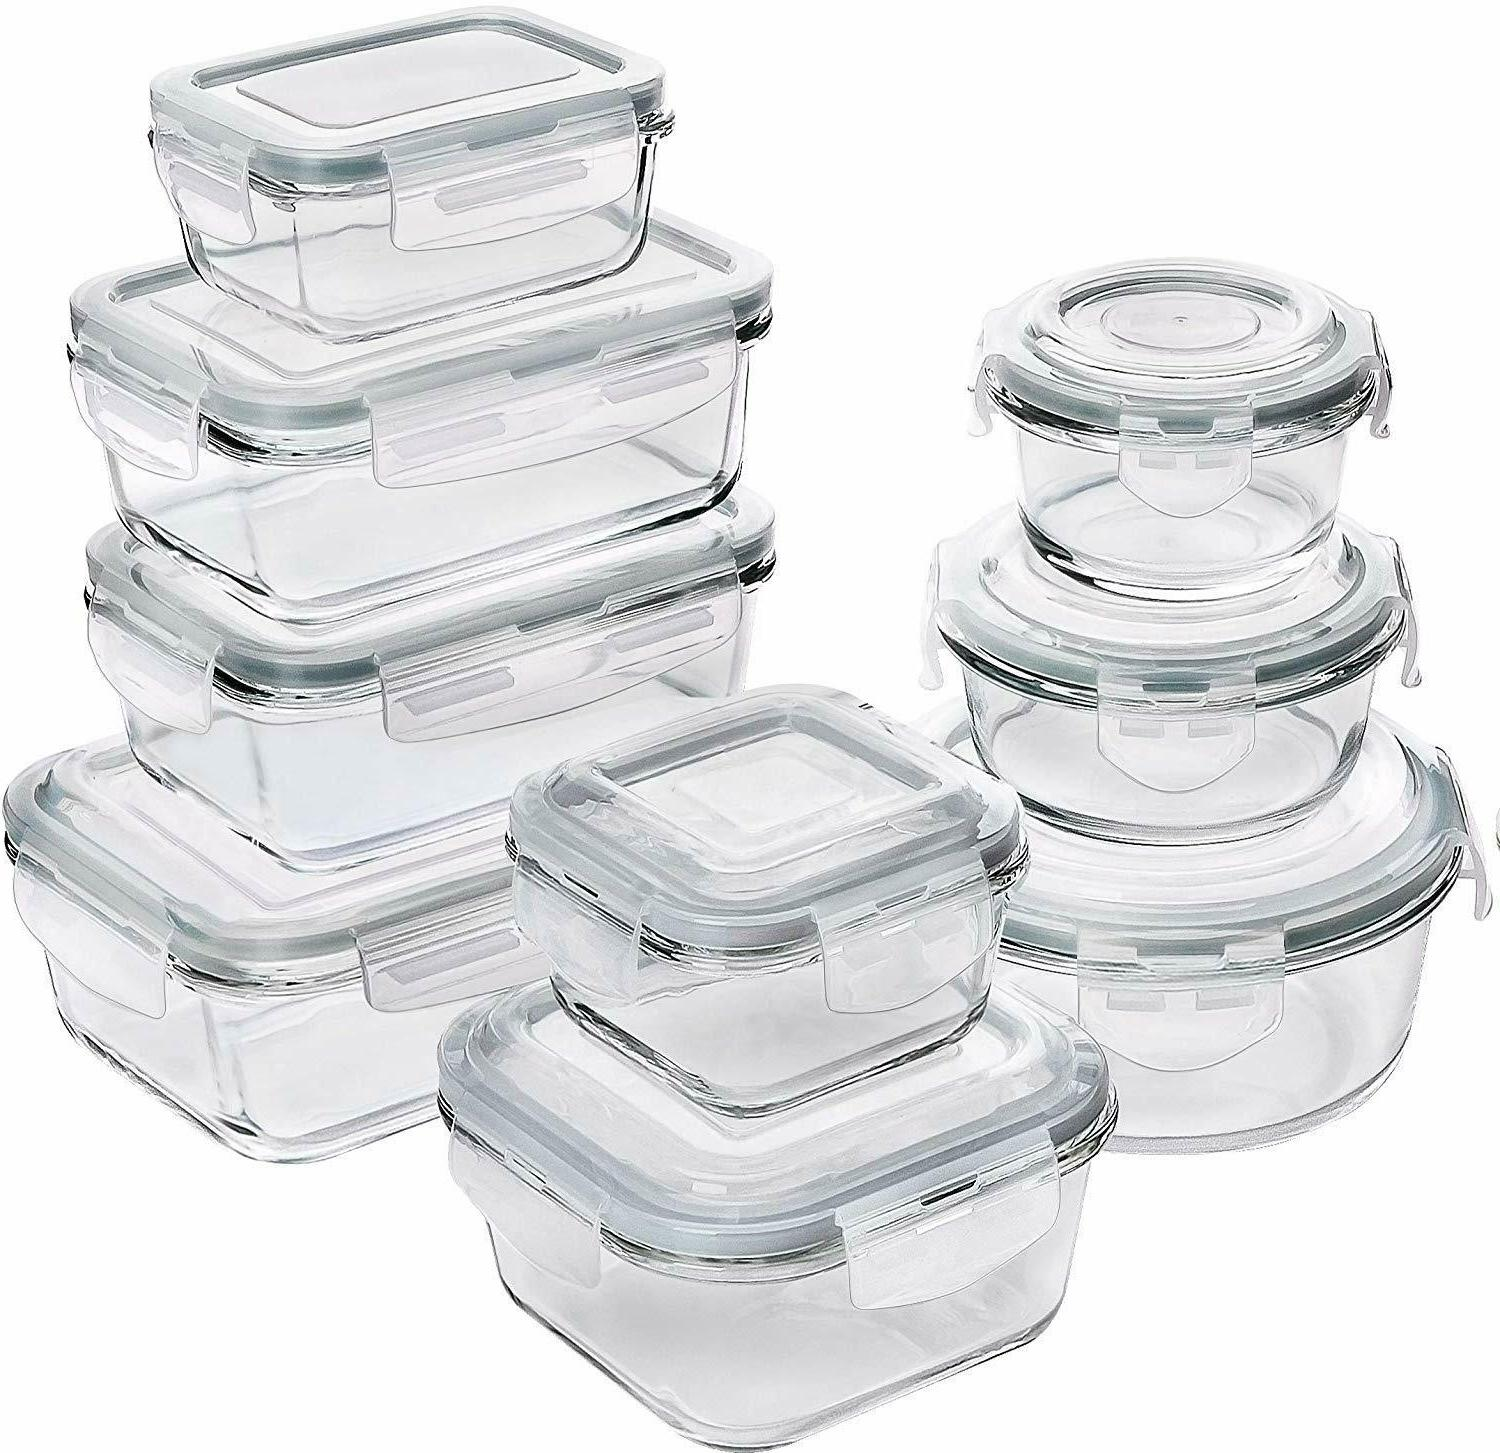 18 pieces glass food storage container set